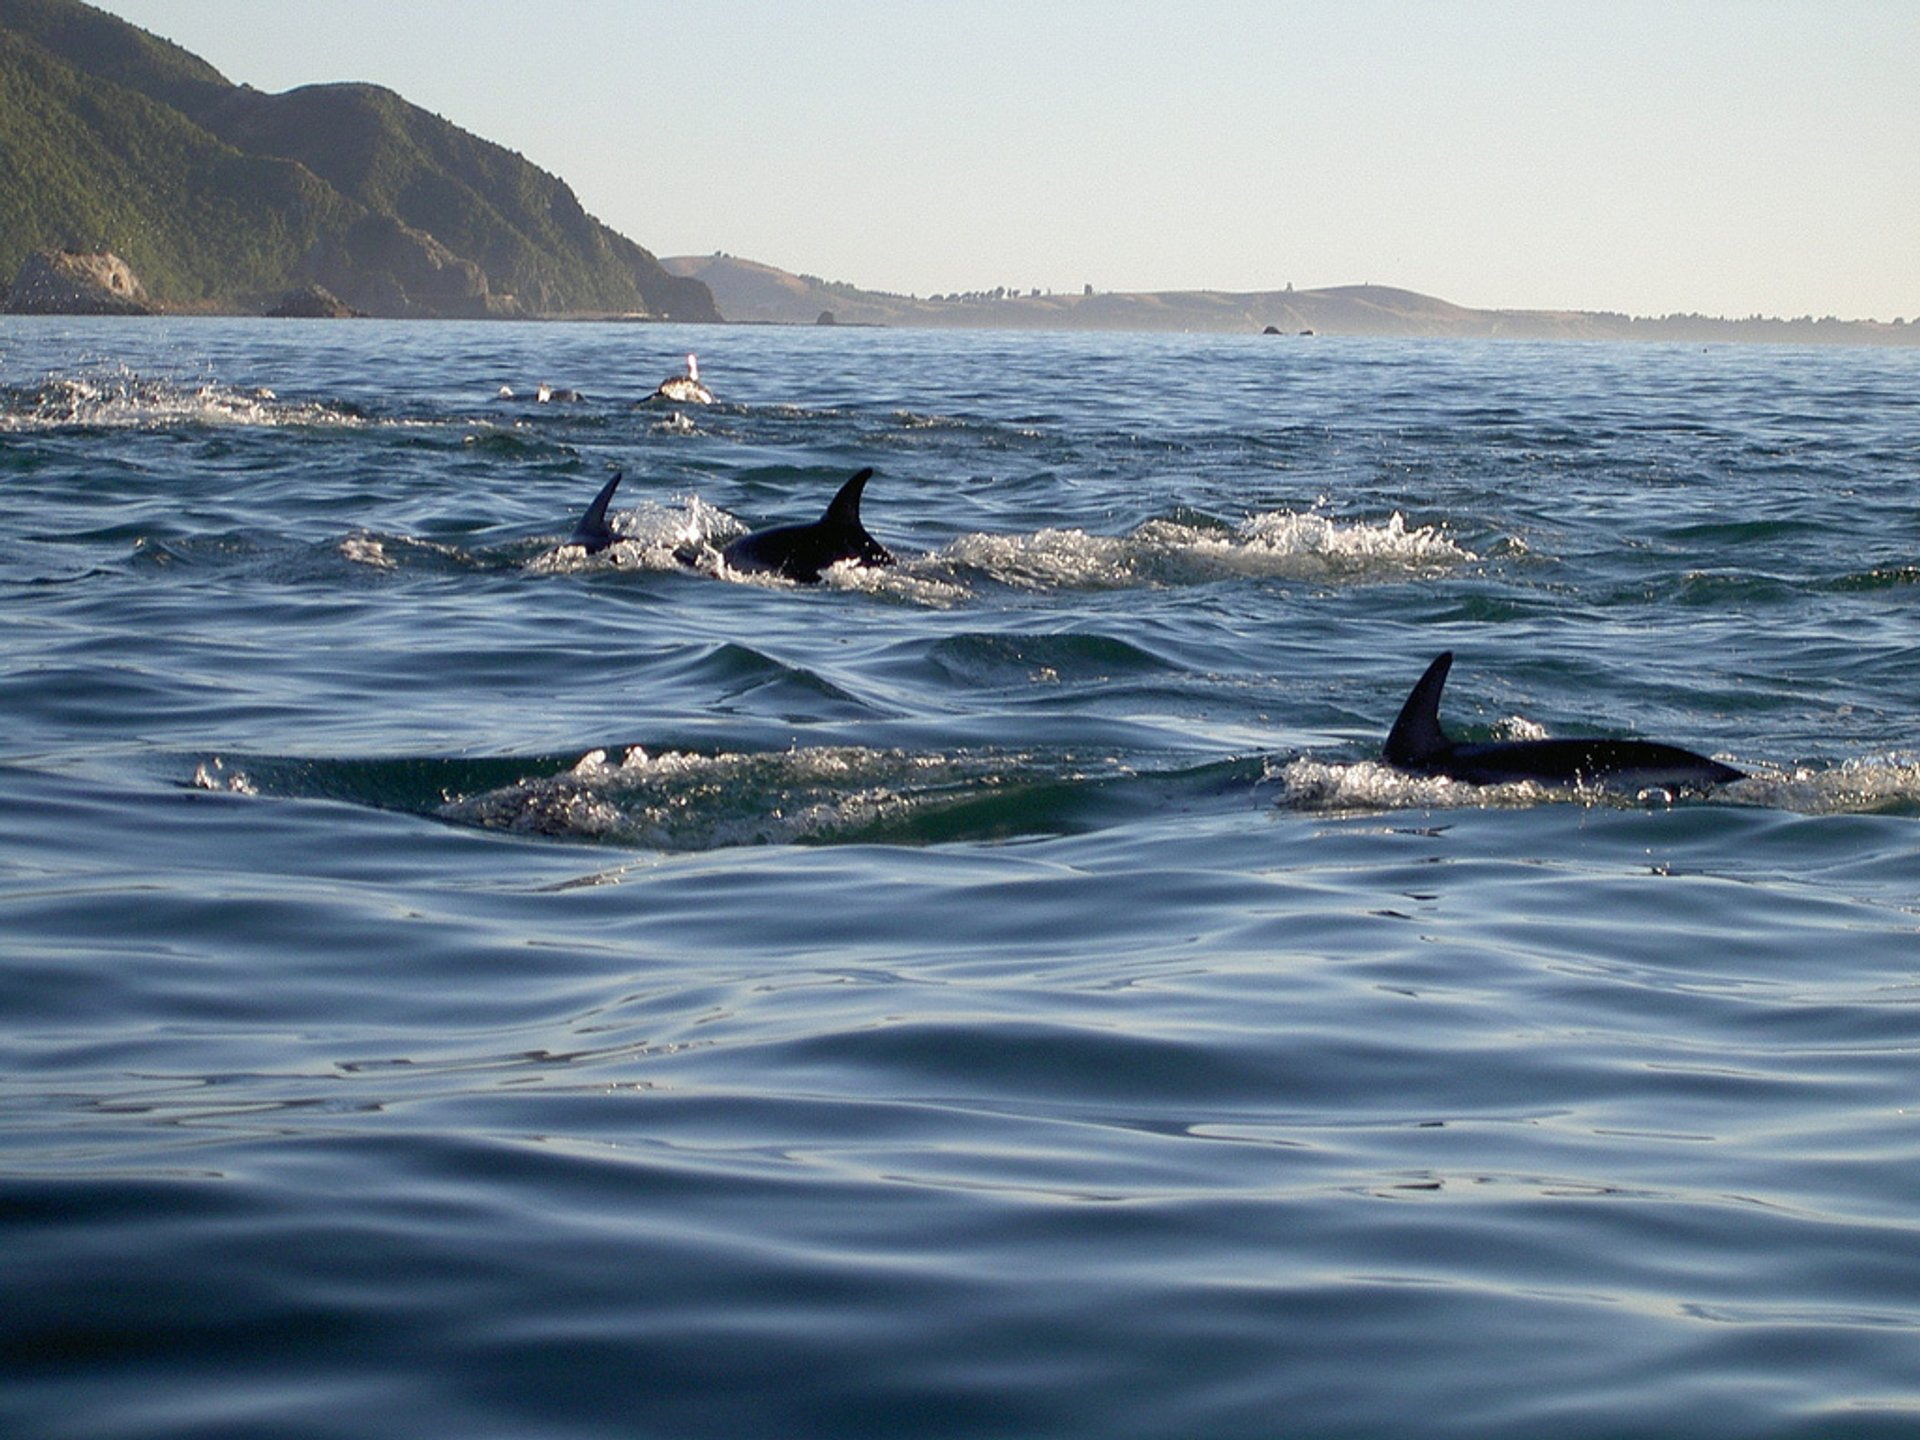 Dolphin Encounter in New Zealand - Best Season 2019